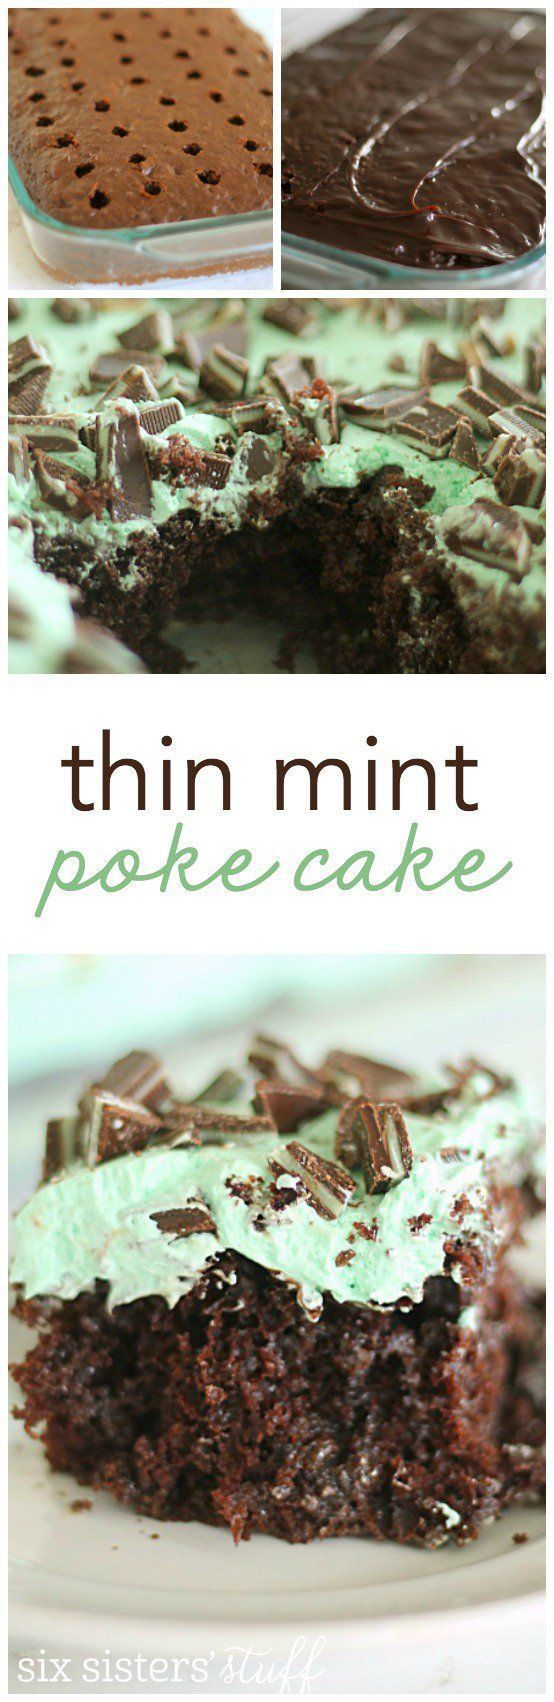 St. Patrick's Day Thin Mint Poke Cake from http://SixSistersStuff.com | Chocolate Cake smothered in hot fudge, creamy mint frosting and andes mints. This is one dessert you do not want to miss! | Best Dessert Ideas